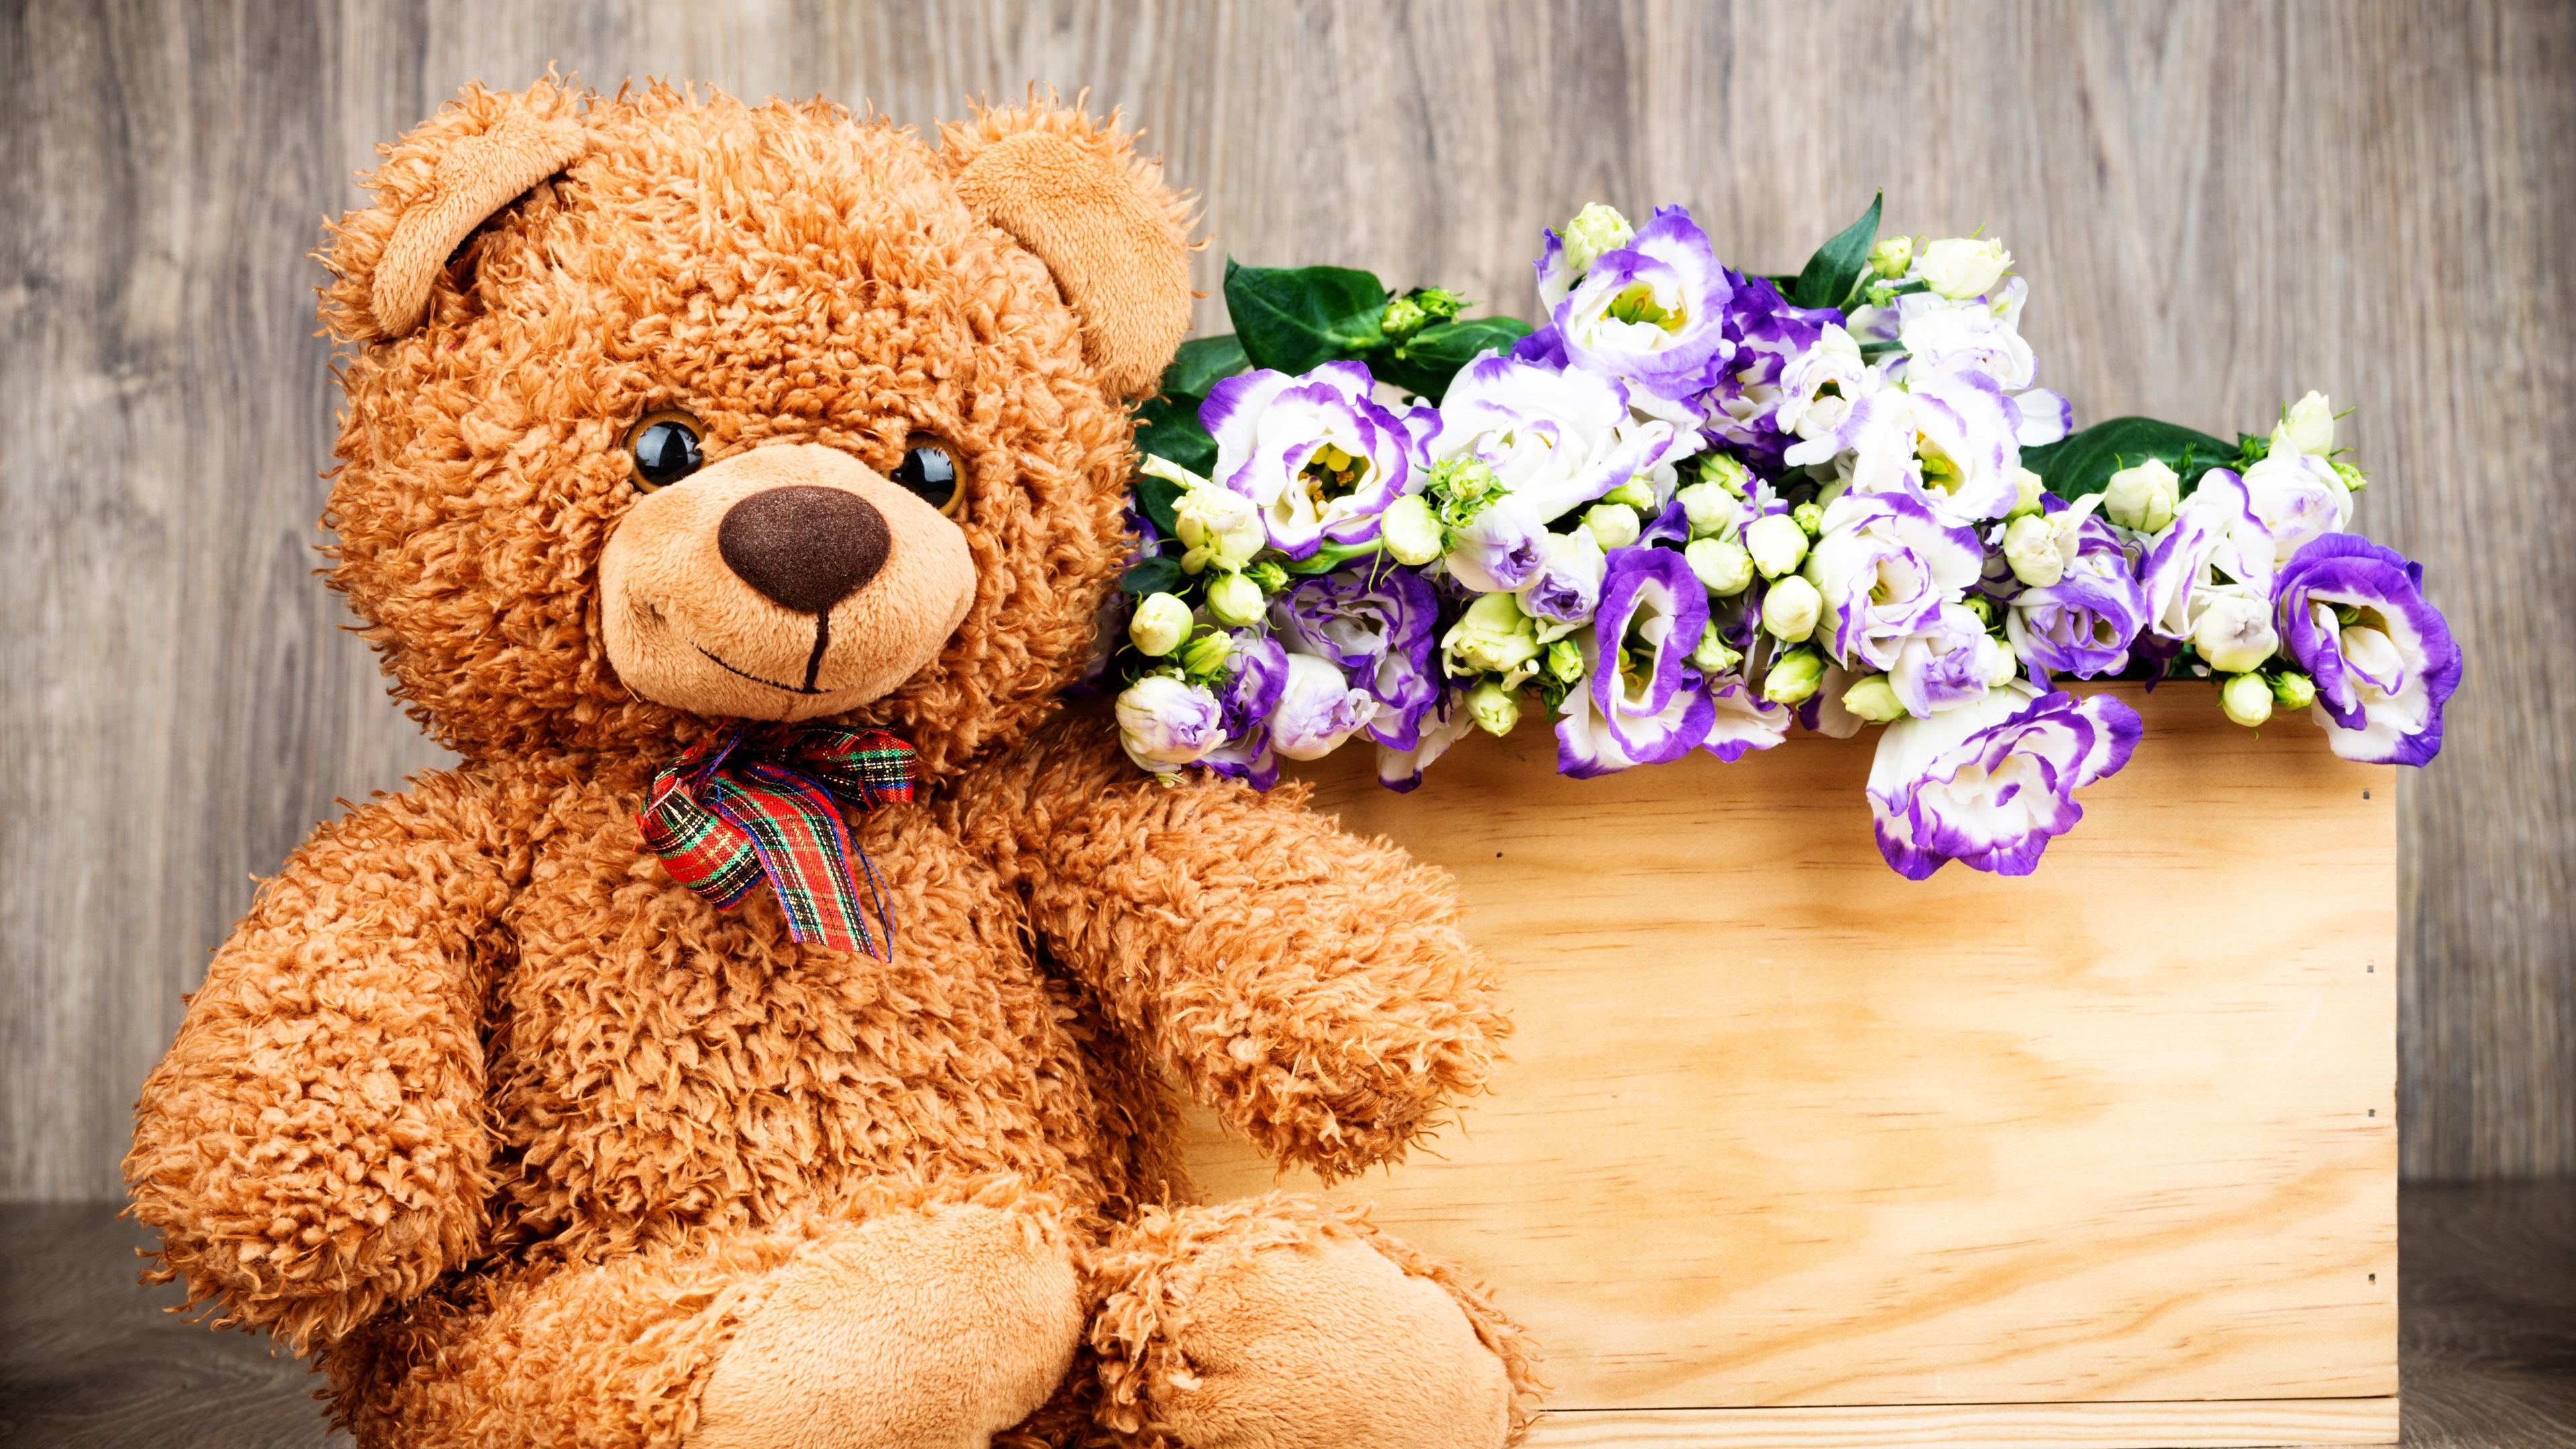 Wallpaper Teddy Toy Bear Flowers 3840x2160 Uhd 4k Picture Image